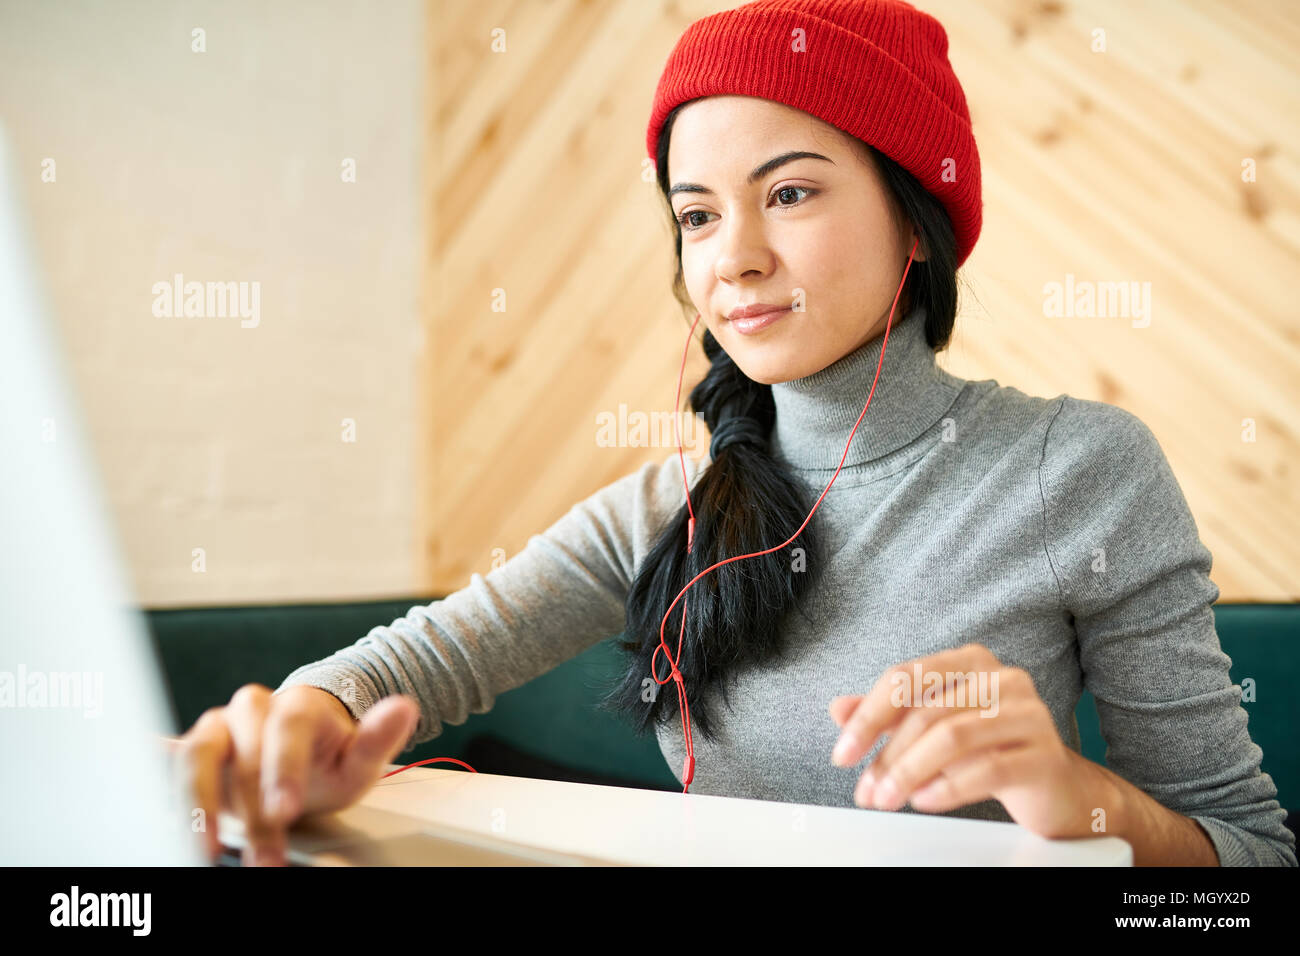 Young Woman Blogging in Cafe - Stock Image